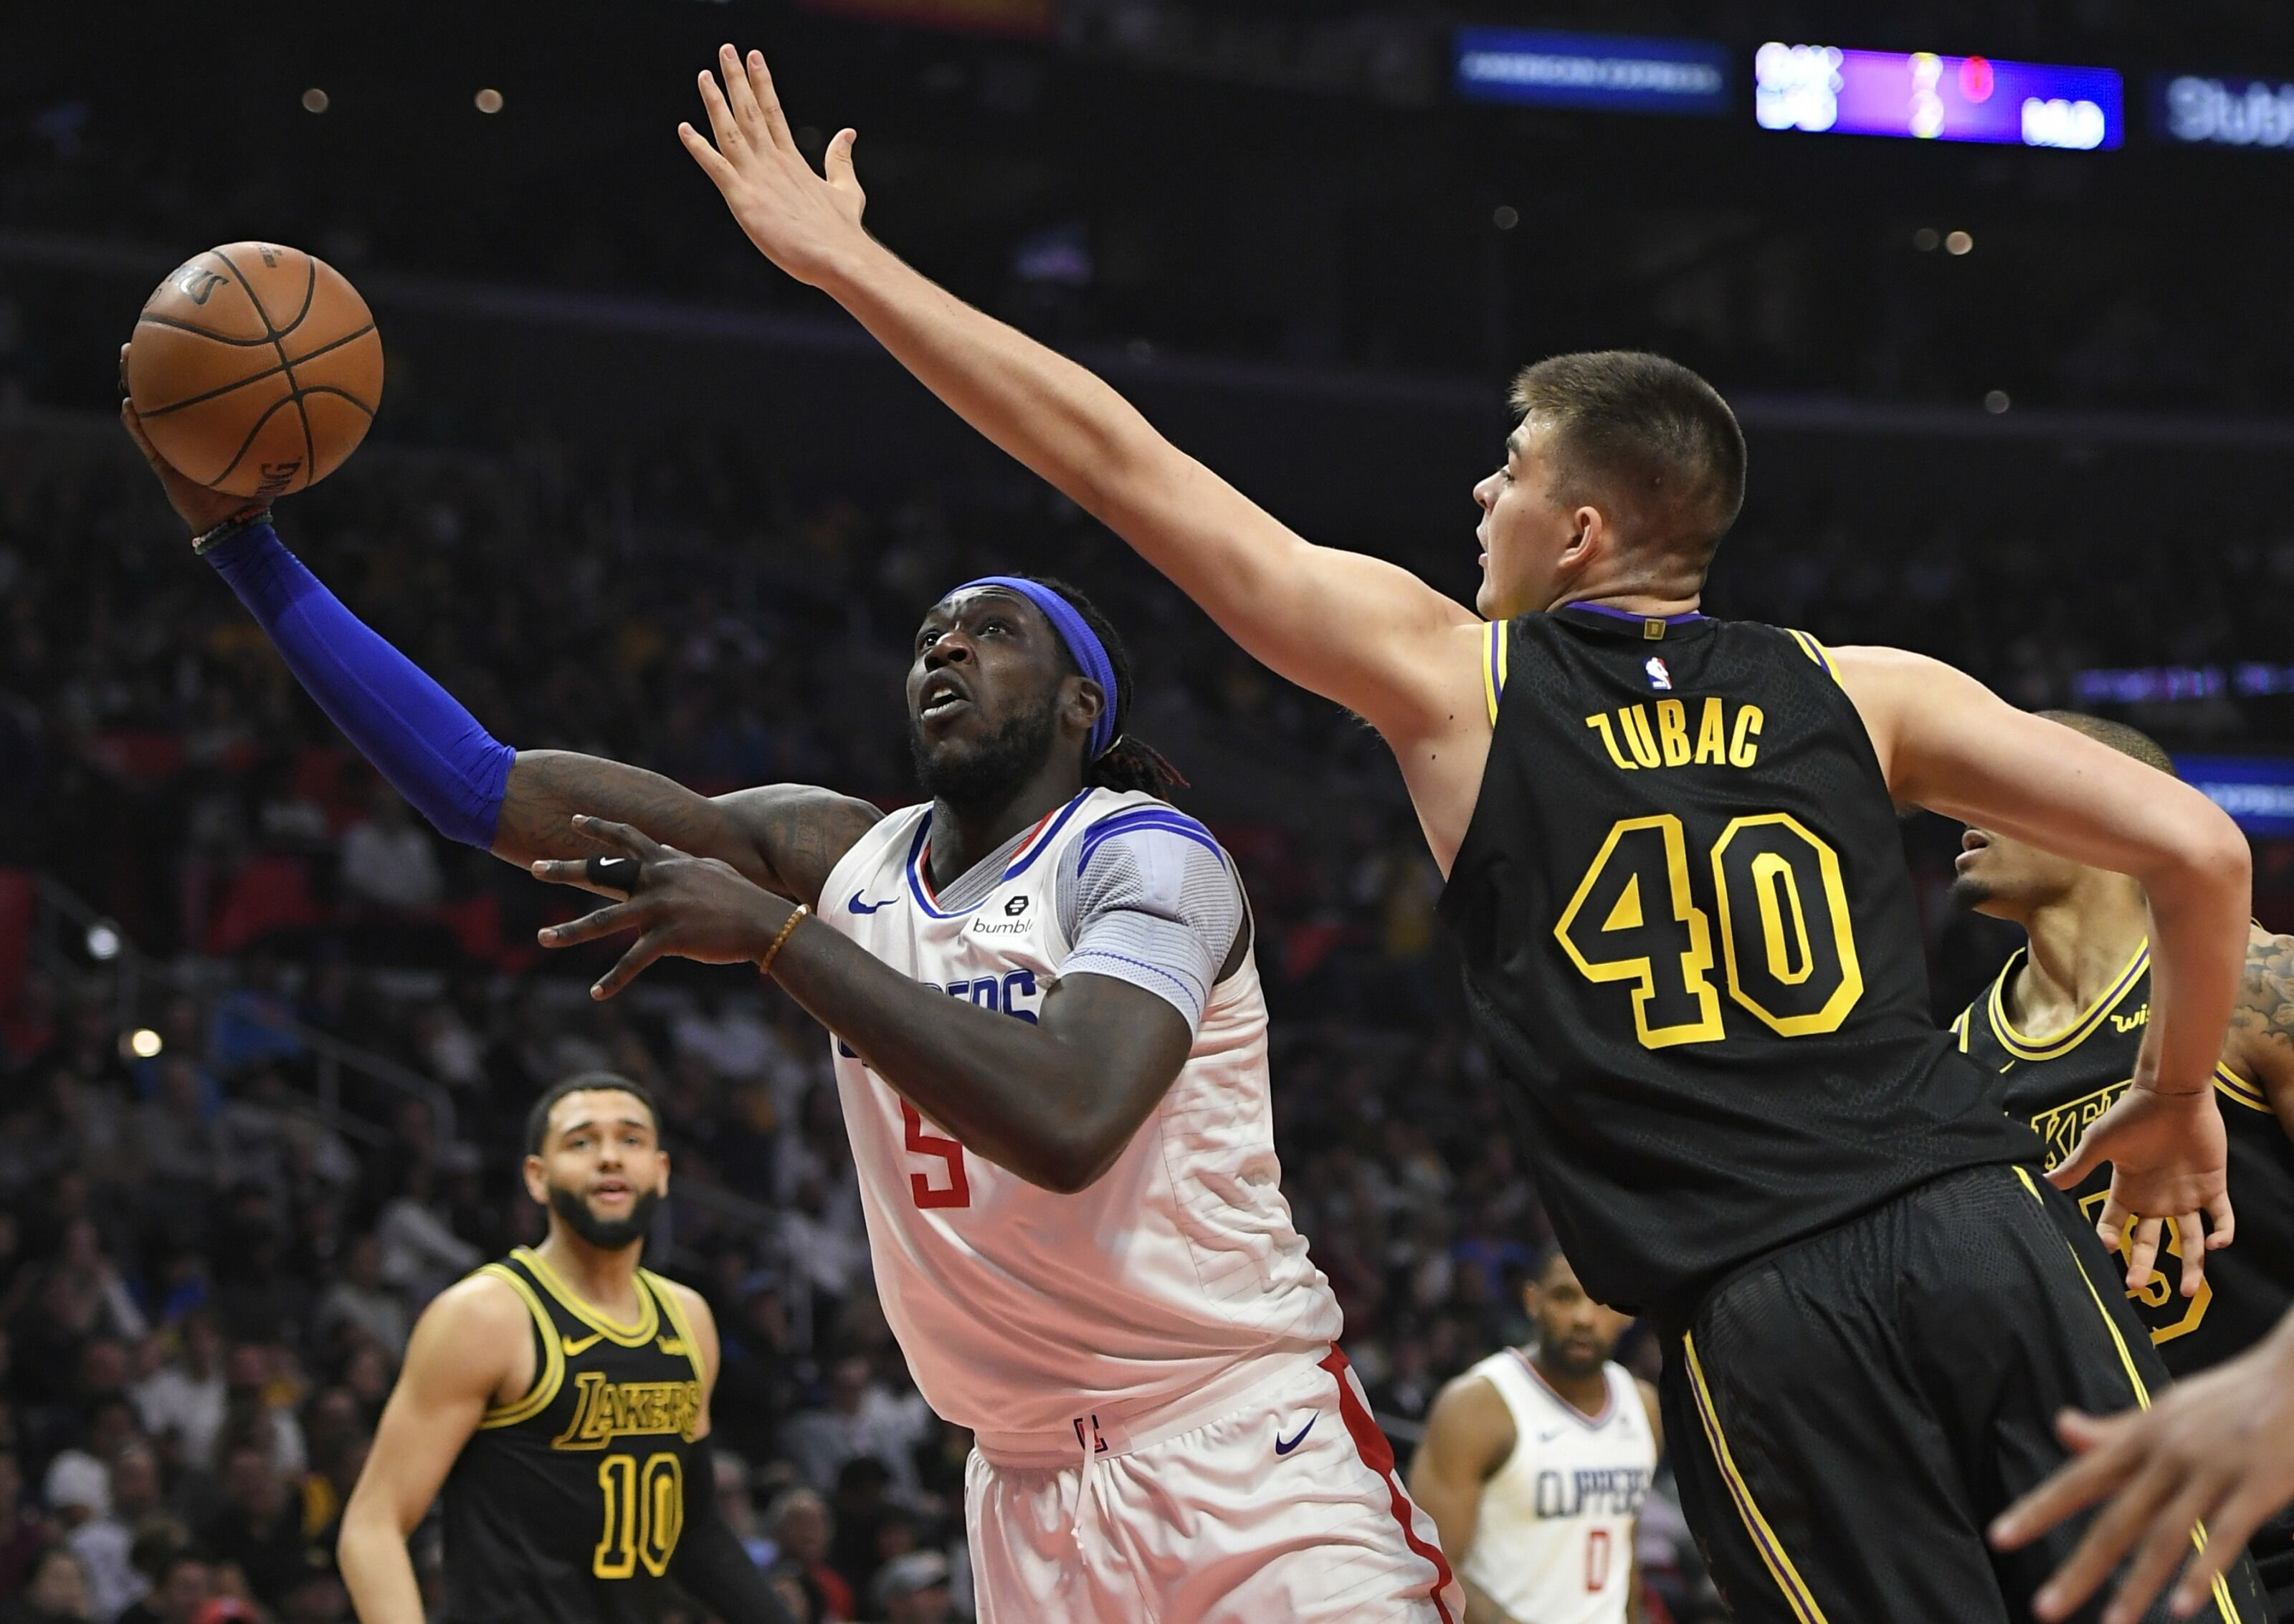 945031458-los-angeles-lakers-v-los-angeles-clippers.jpg